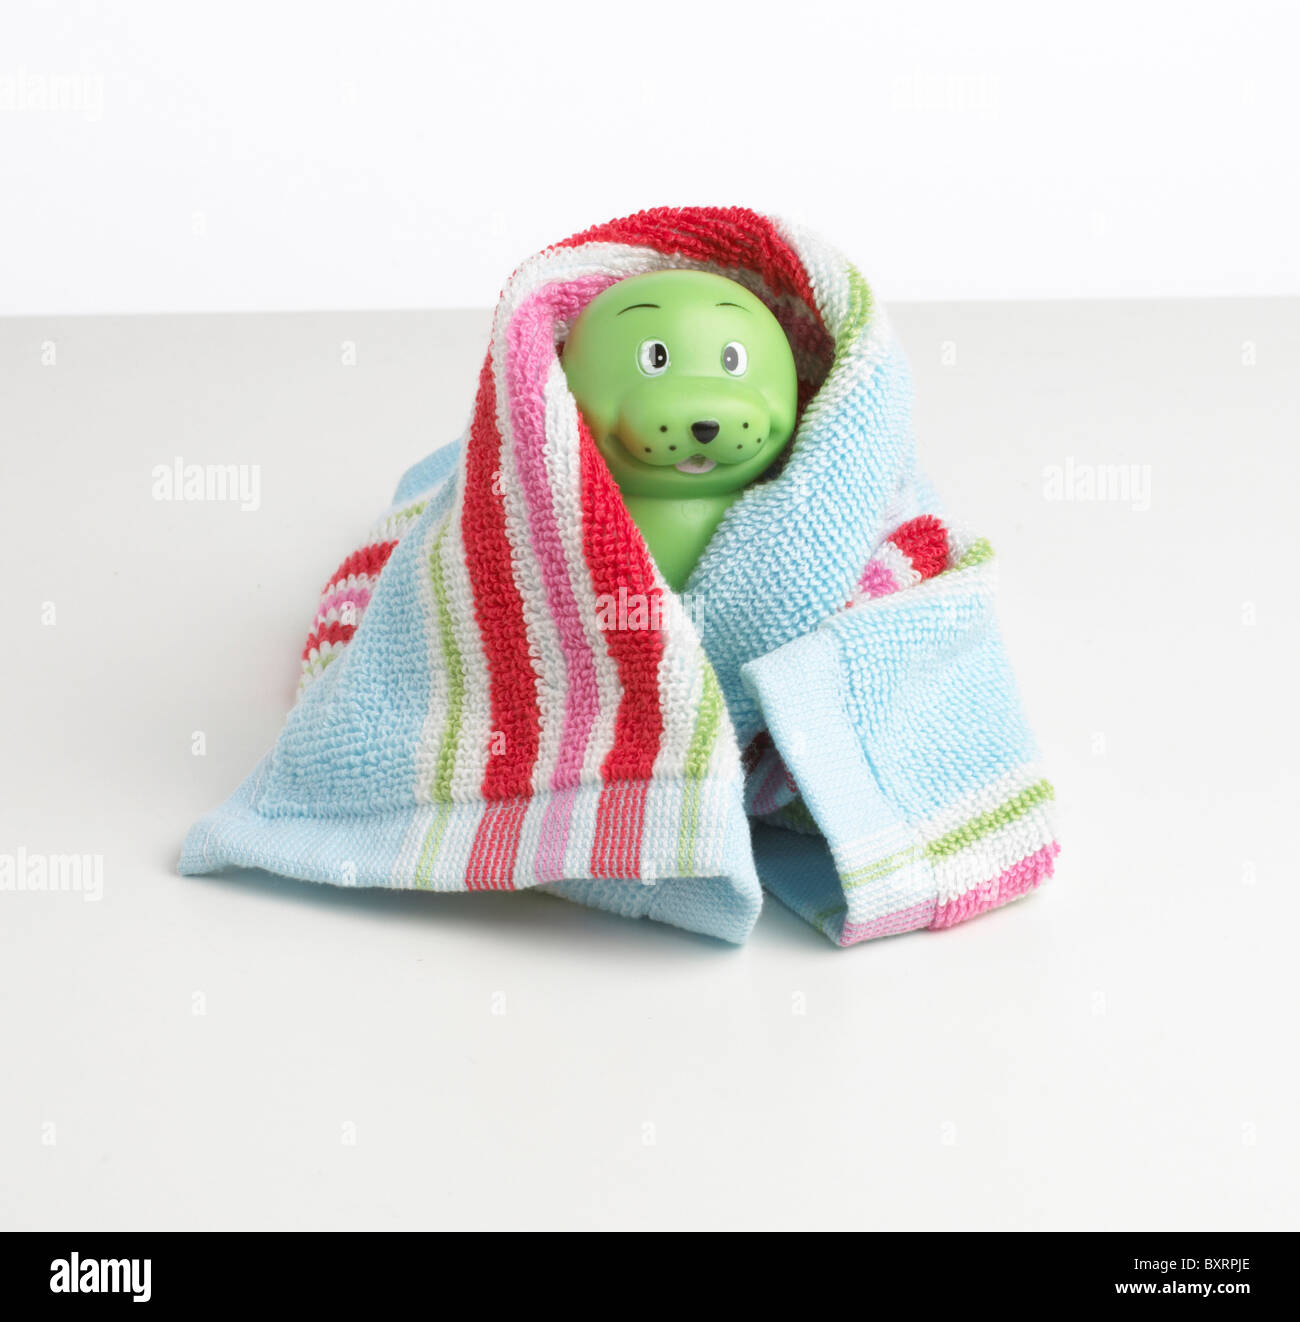 Plastic green toy wrapped in towel - Stock Image